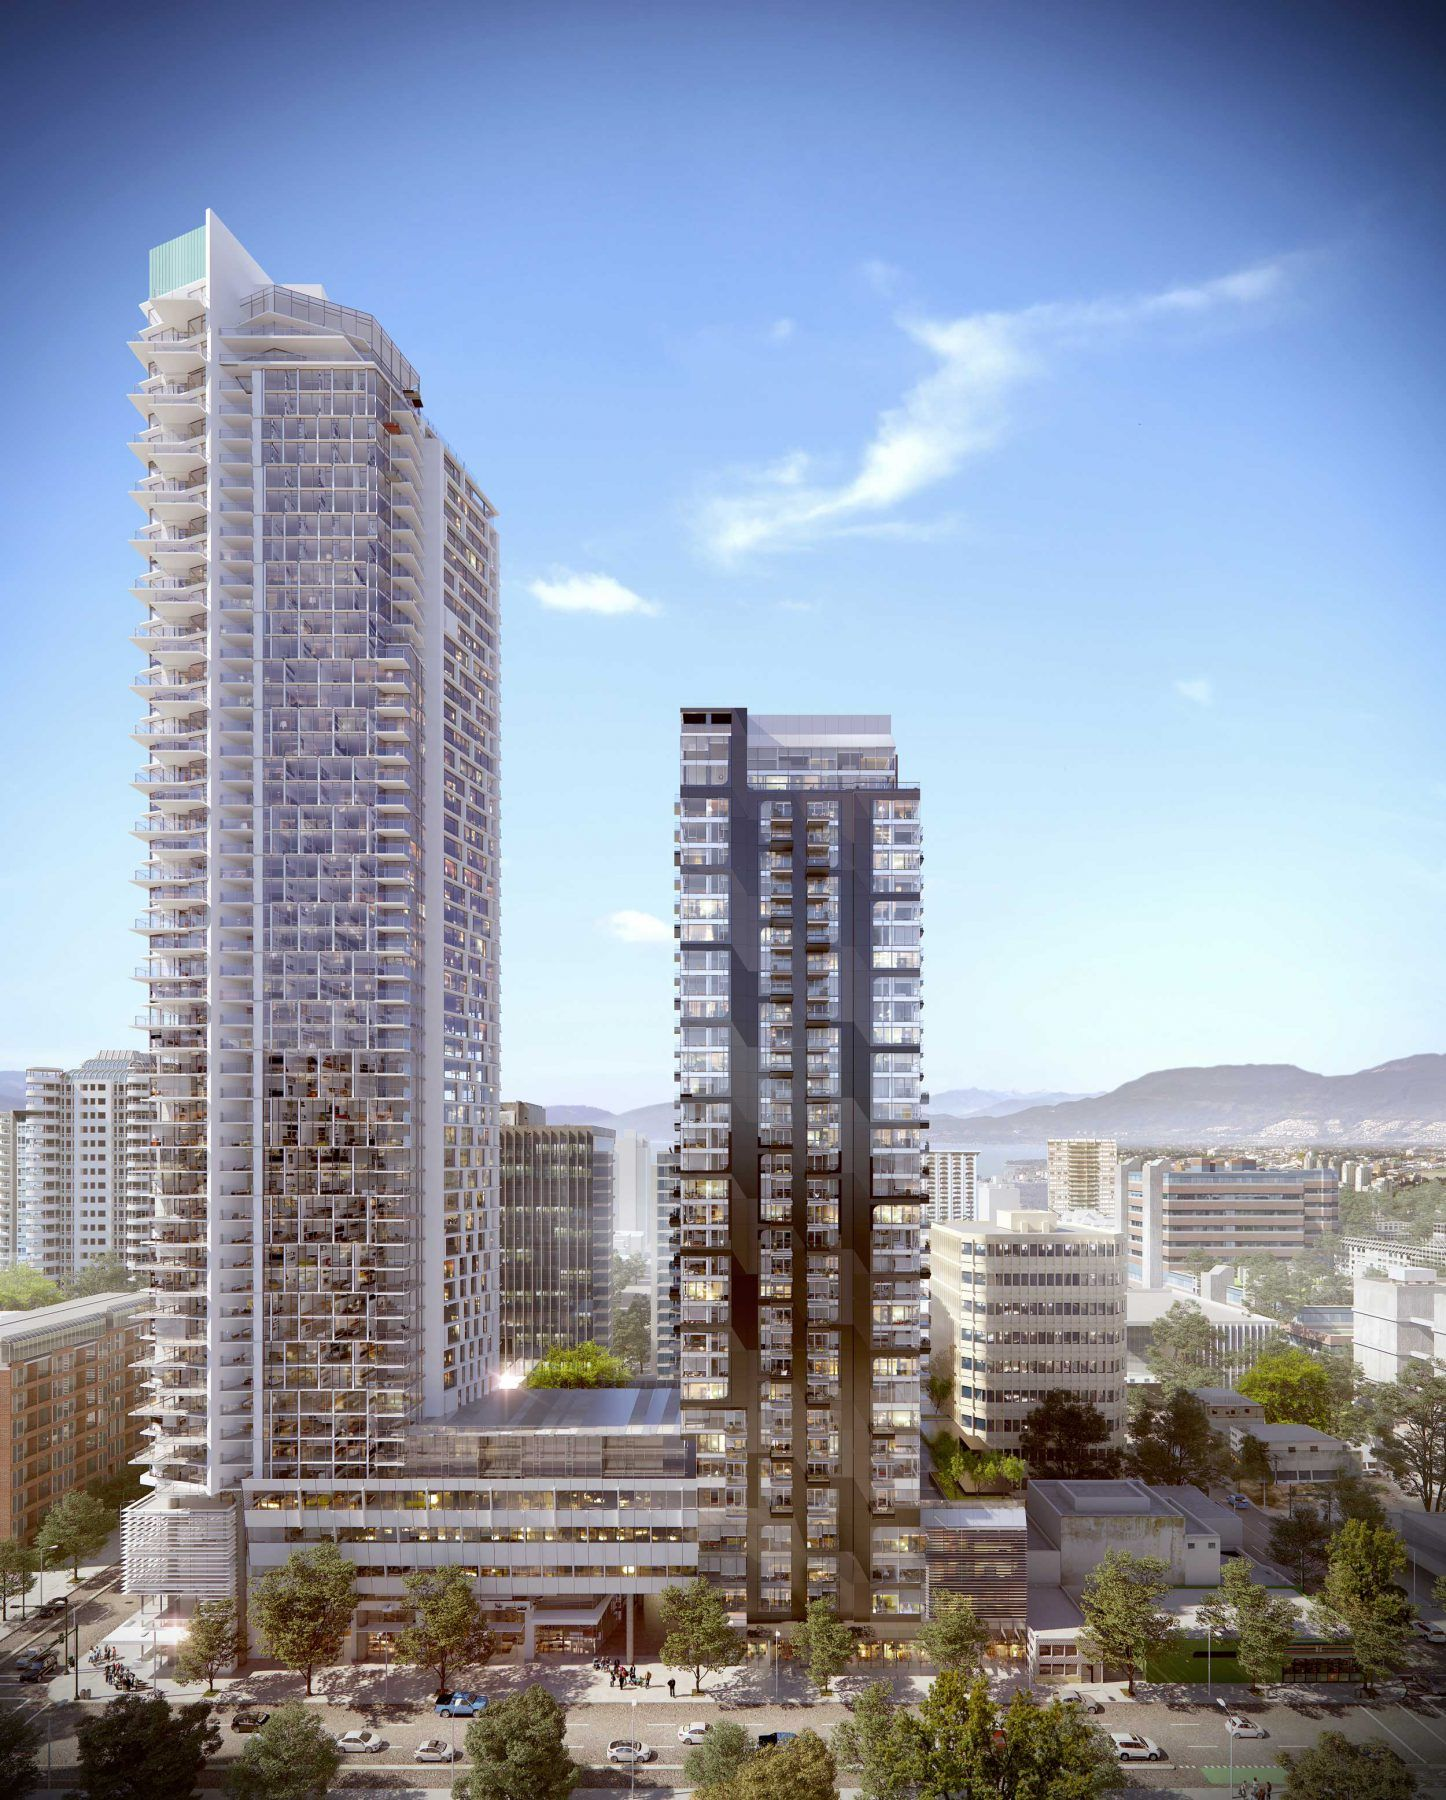 Main Photo: 2109 1277 Hornby in Vancouver: Downtown VW Condo for sale (Vancouver West)